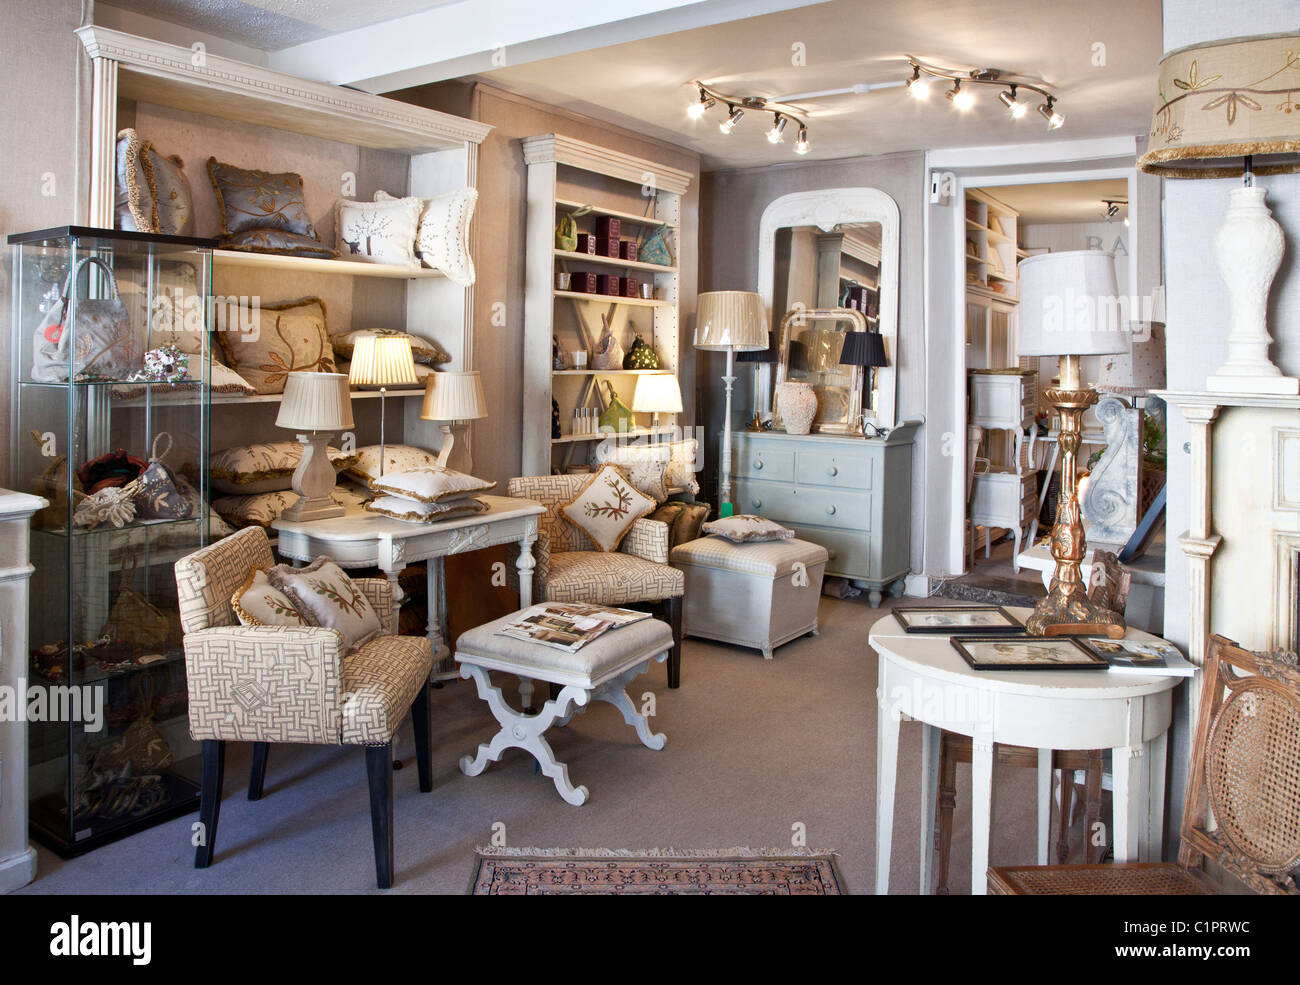 Inside an interior design shop in the provincial English town of Warminster in Wiltshire, England, UK - Stock Image